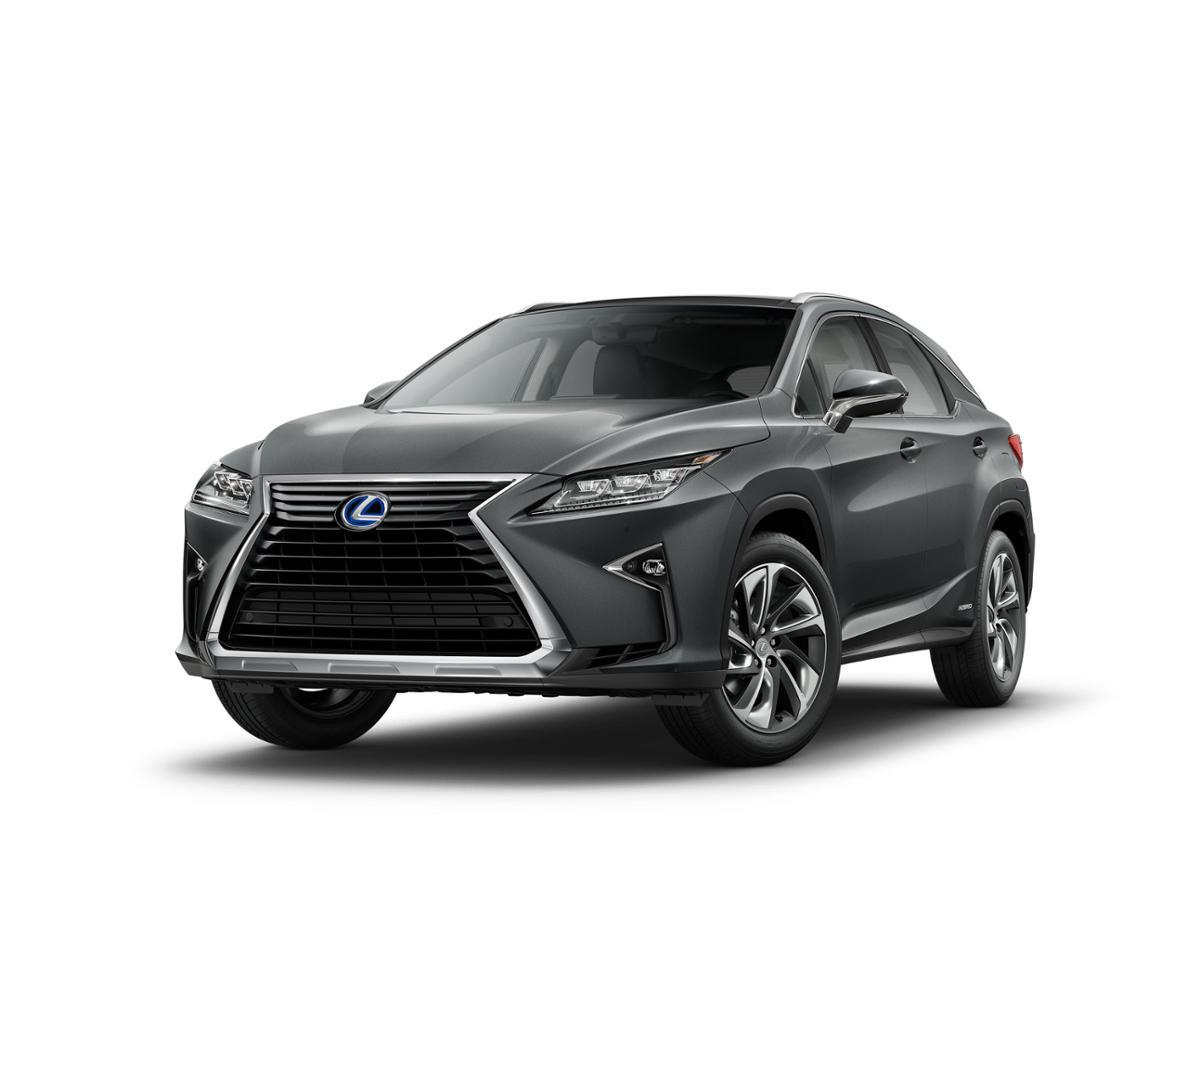 2017 Lexus RX 450h Vehicle Photo in Torrance, CA 90505